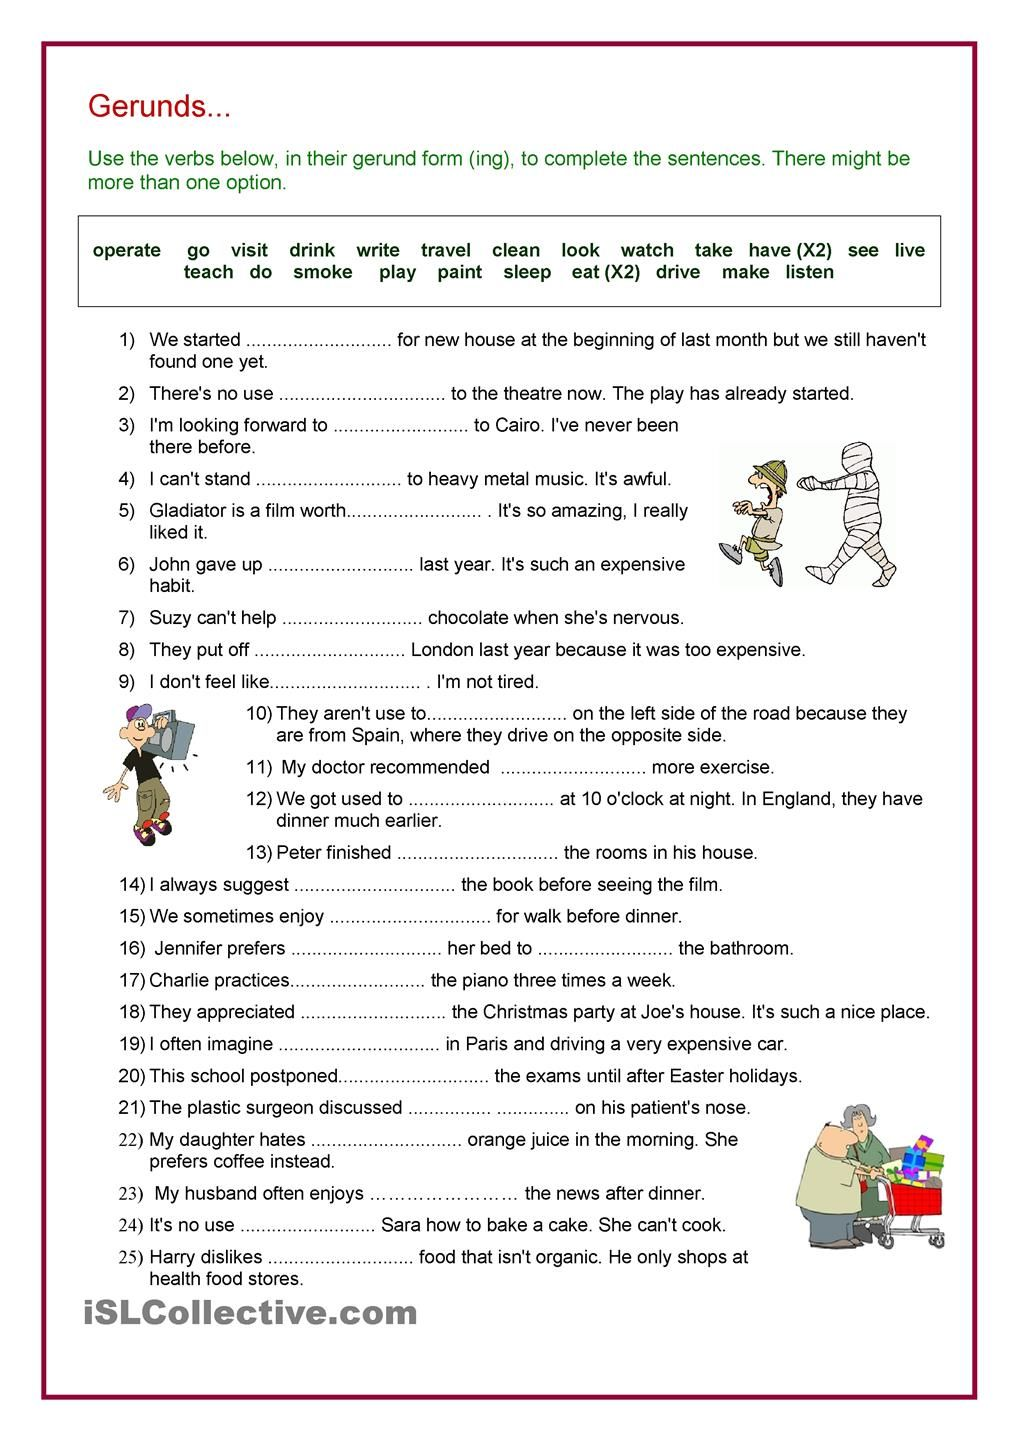 Worksheets Gerunds Worksheet verb gerund review lesson plan for ling pinterest english review